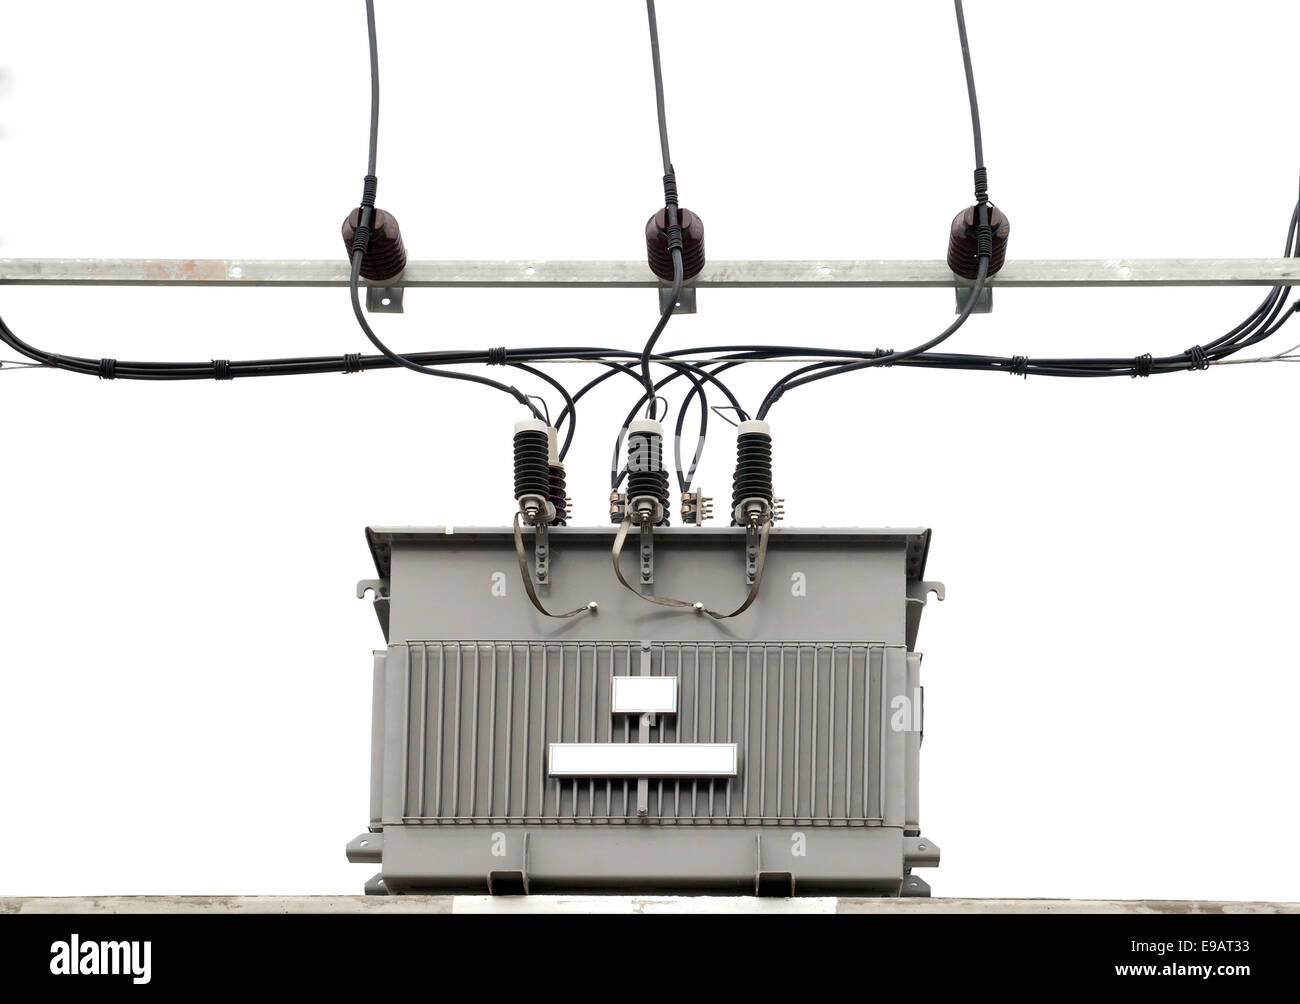 hight resolution of electric transformer stock image